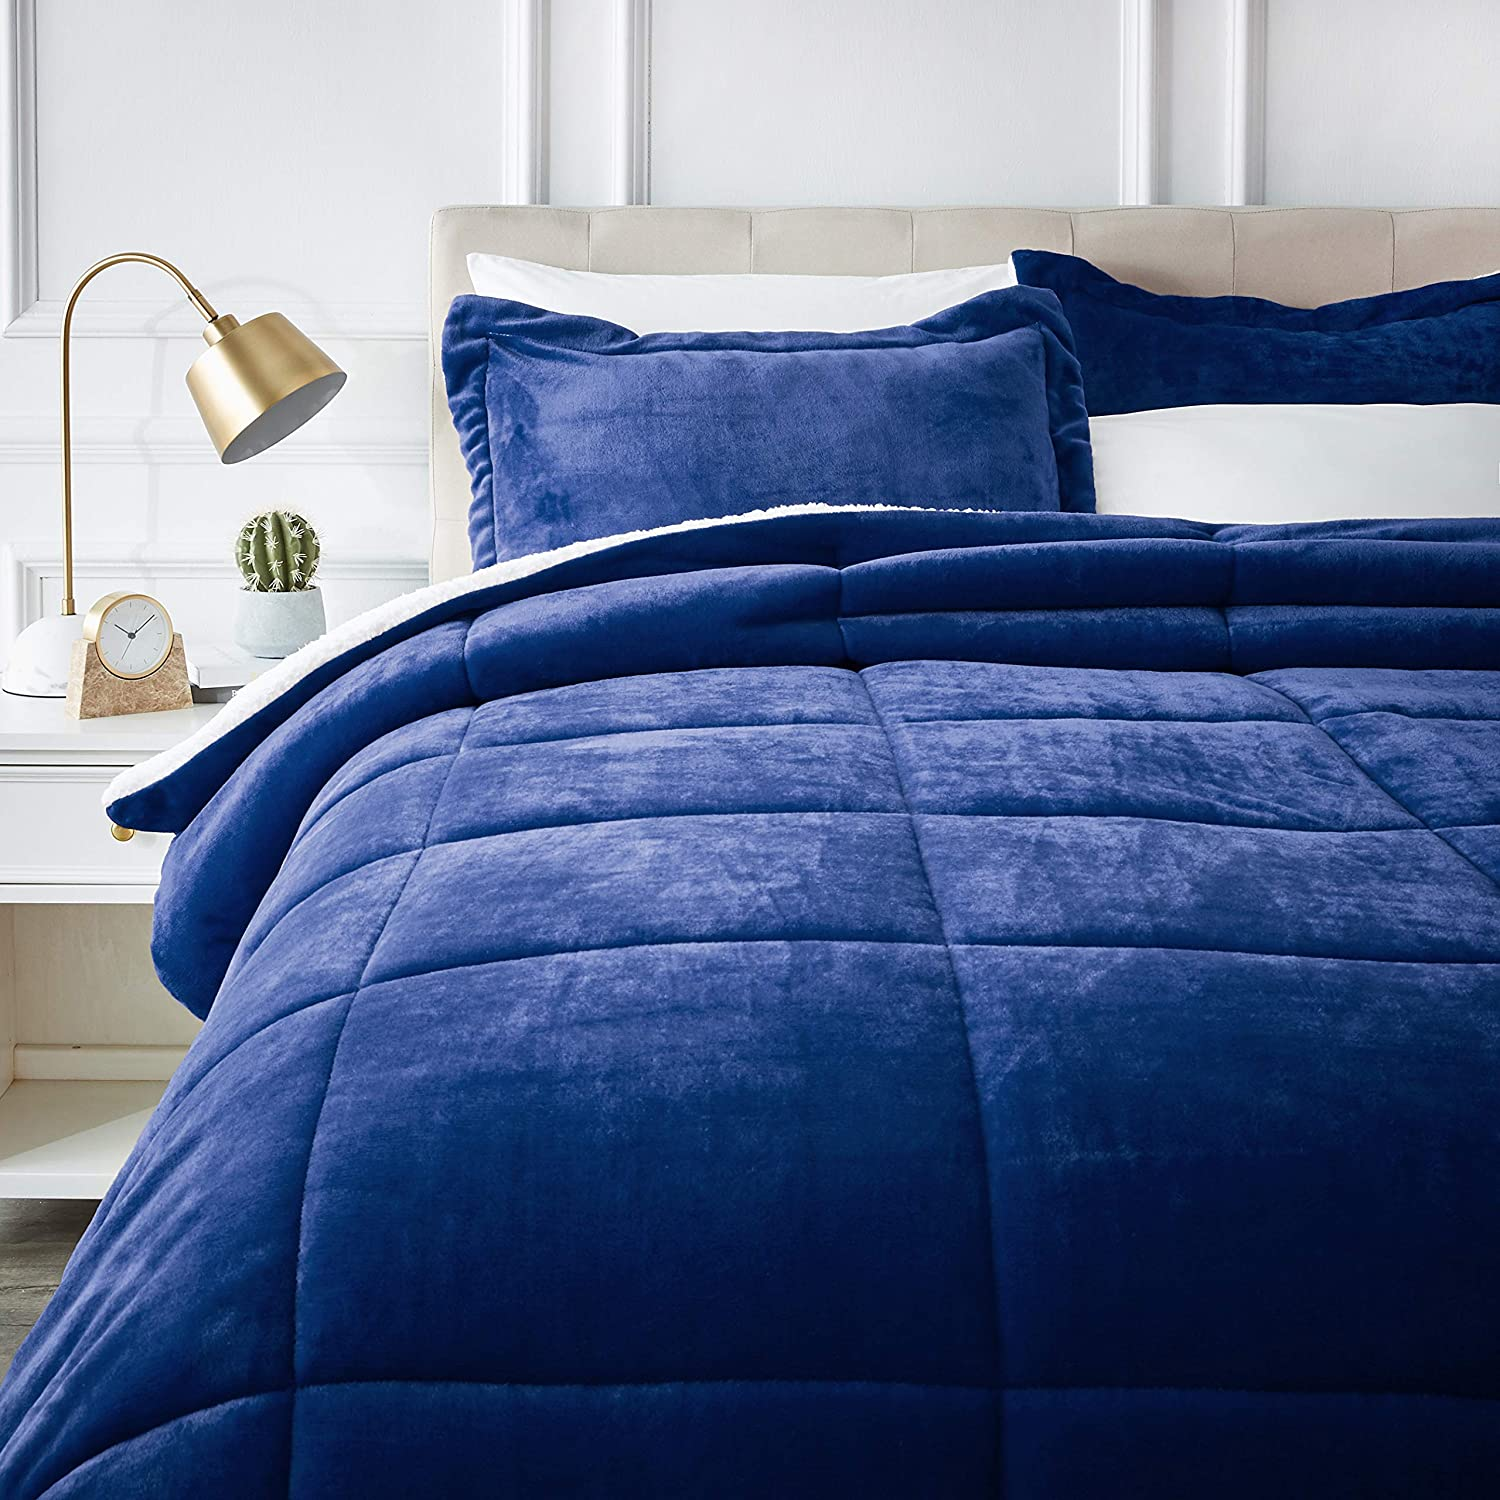 AmazonBasics Micromink Sherpa Comforter Set - Ultra-Soft, Fray-Resistant -Full/Queen, Navy